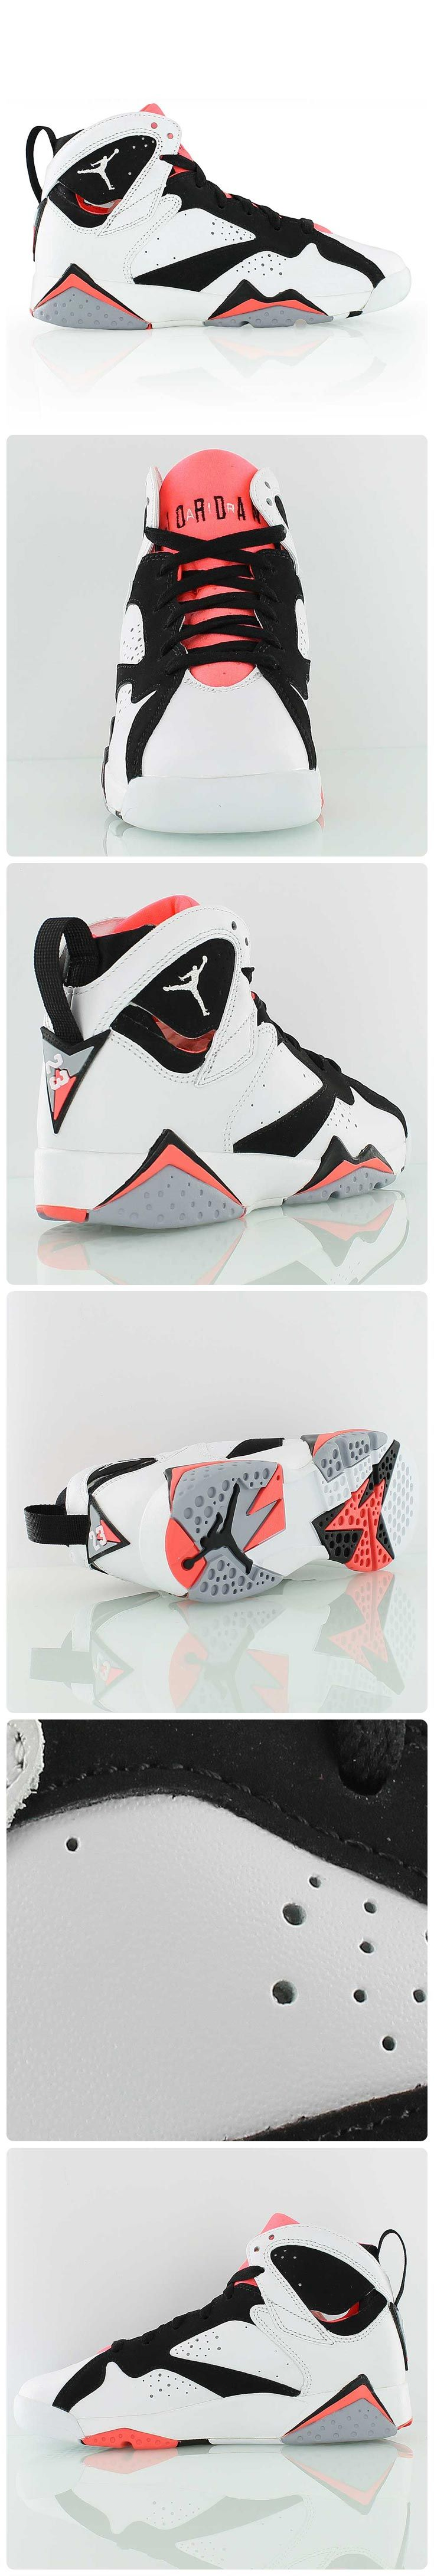 NIKE Women's Shoes - Air Jordan 7 Retro GG Hot Lava exclusively for all the Jordan  girls out there - Find deals and best selling products for Nike Shoes for  ...